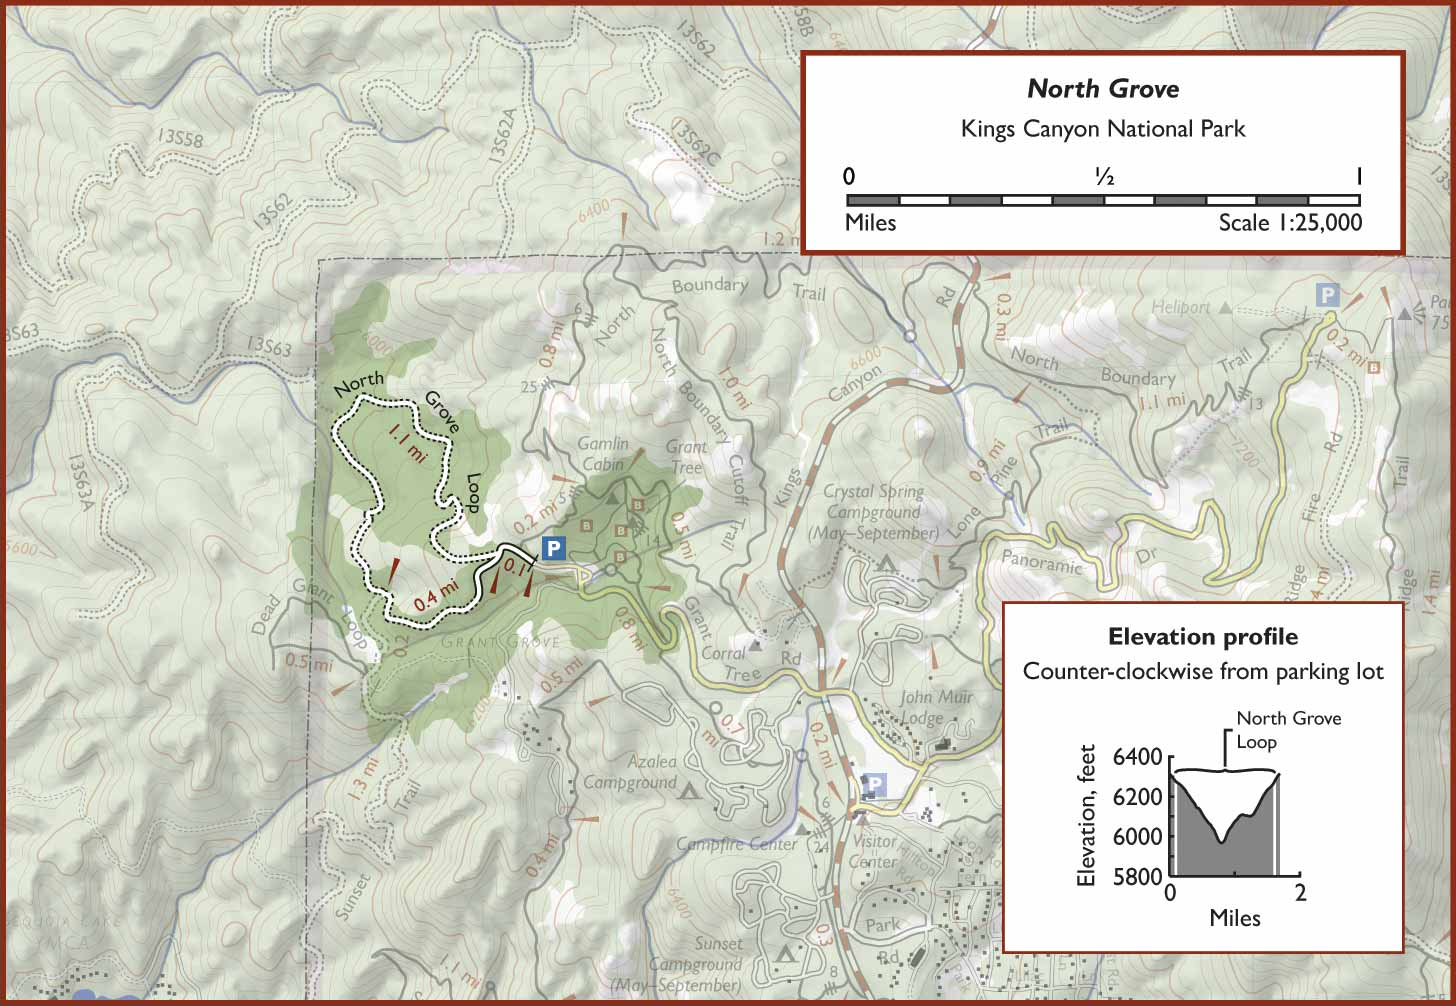 North Grove on california national parks map, giant sequoia national park map, kings canyon np map,